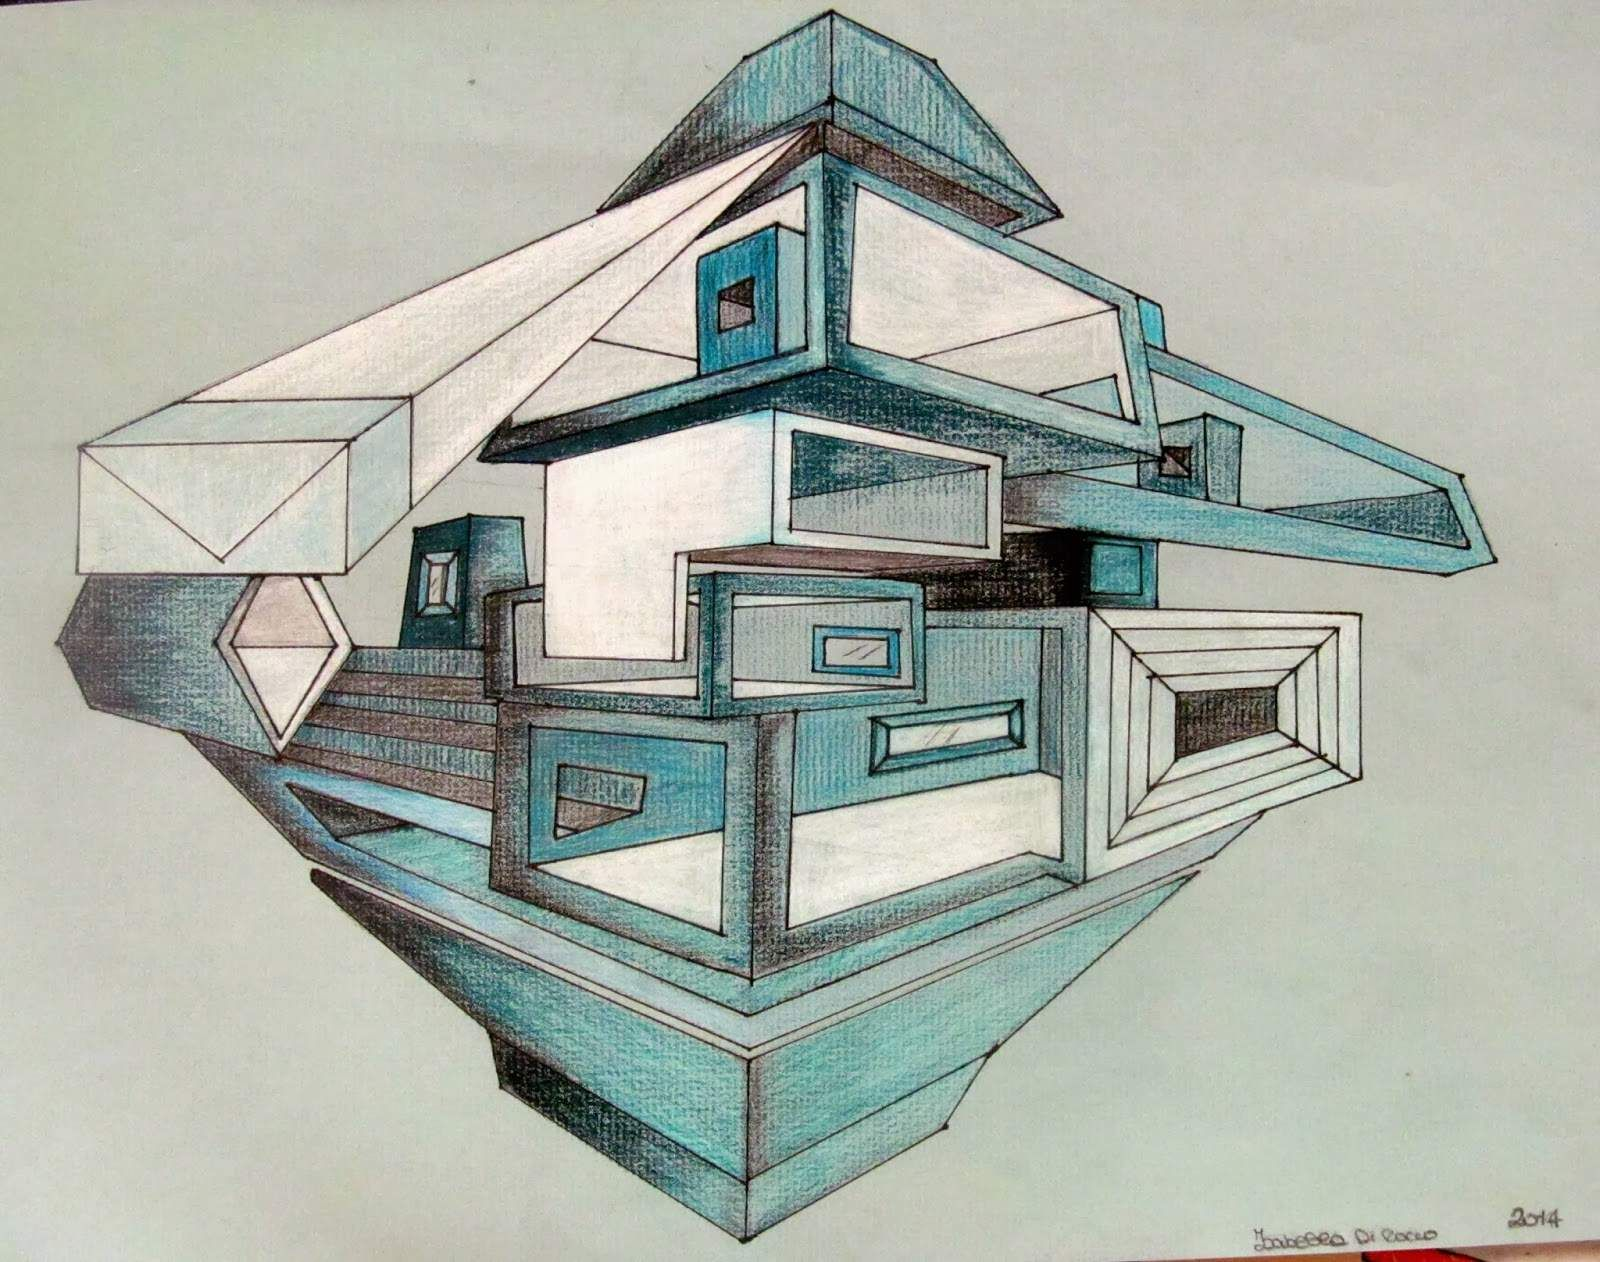 Architecture Drawing Wallpaper 2 point perspective drawing ideas - http://hdwallpaper/2